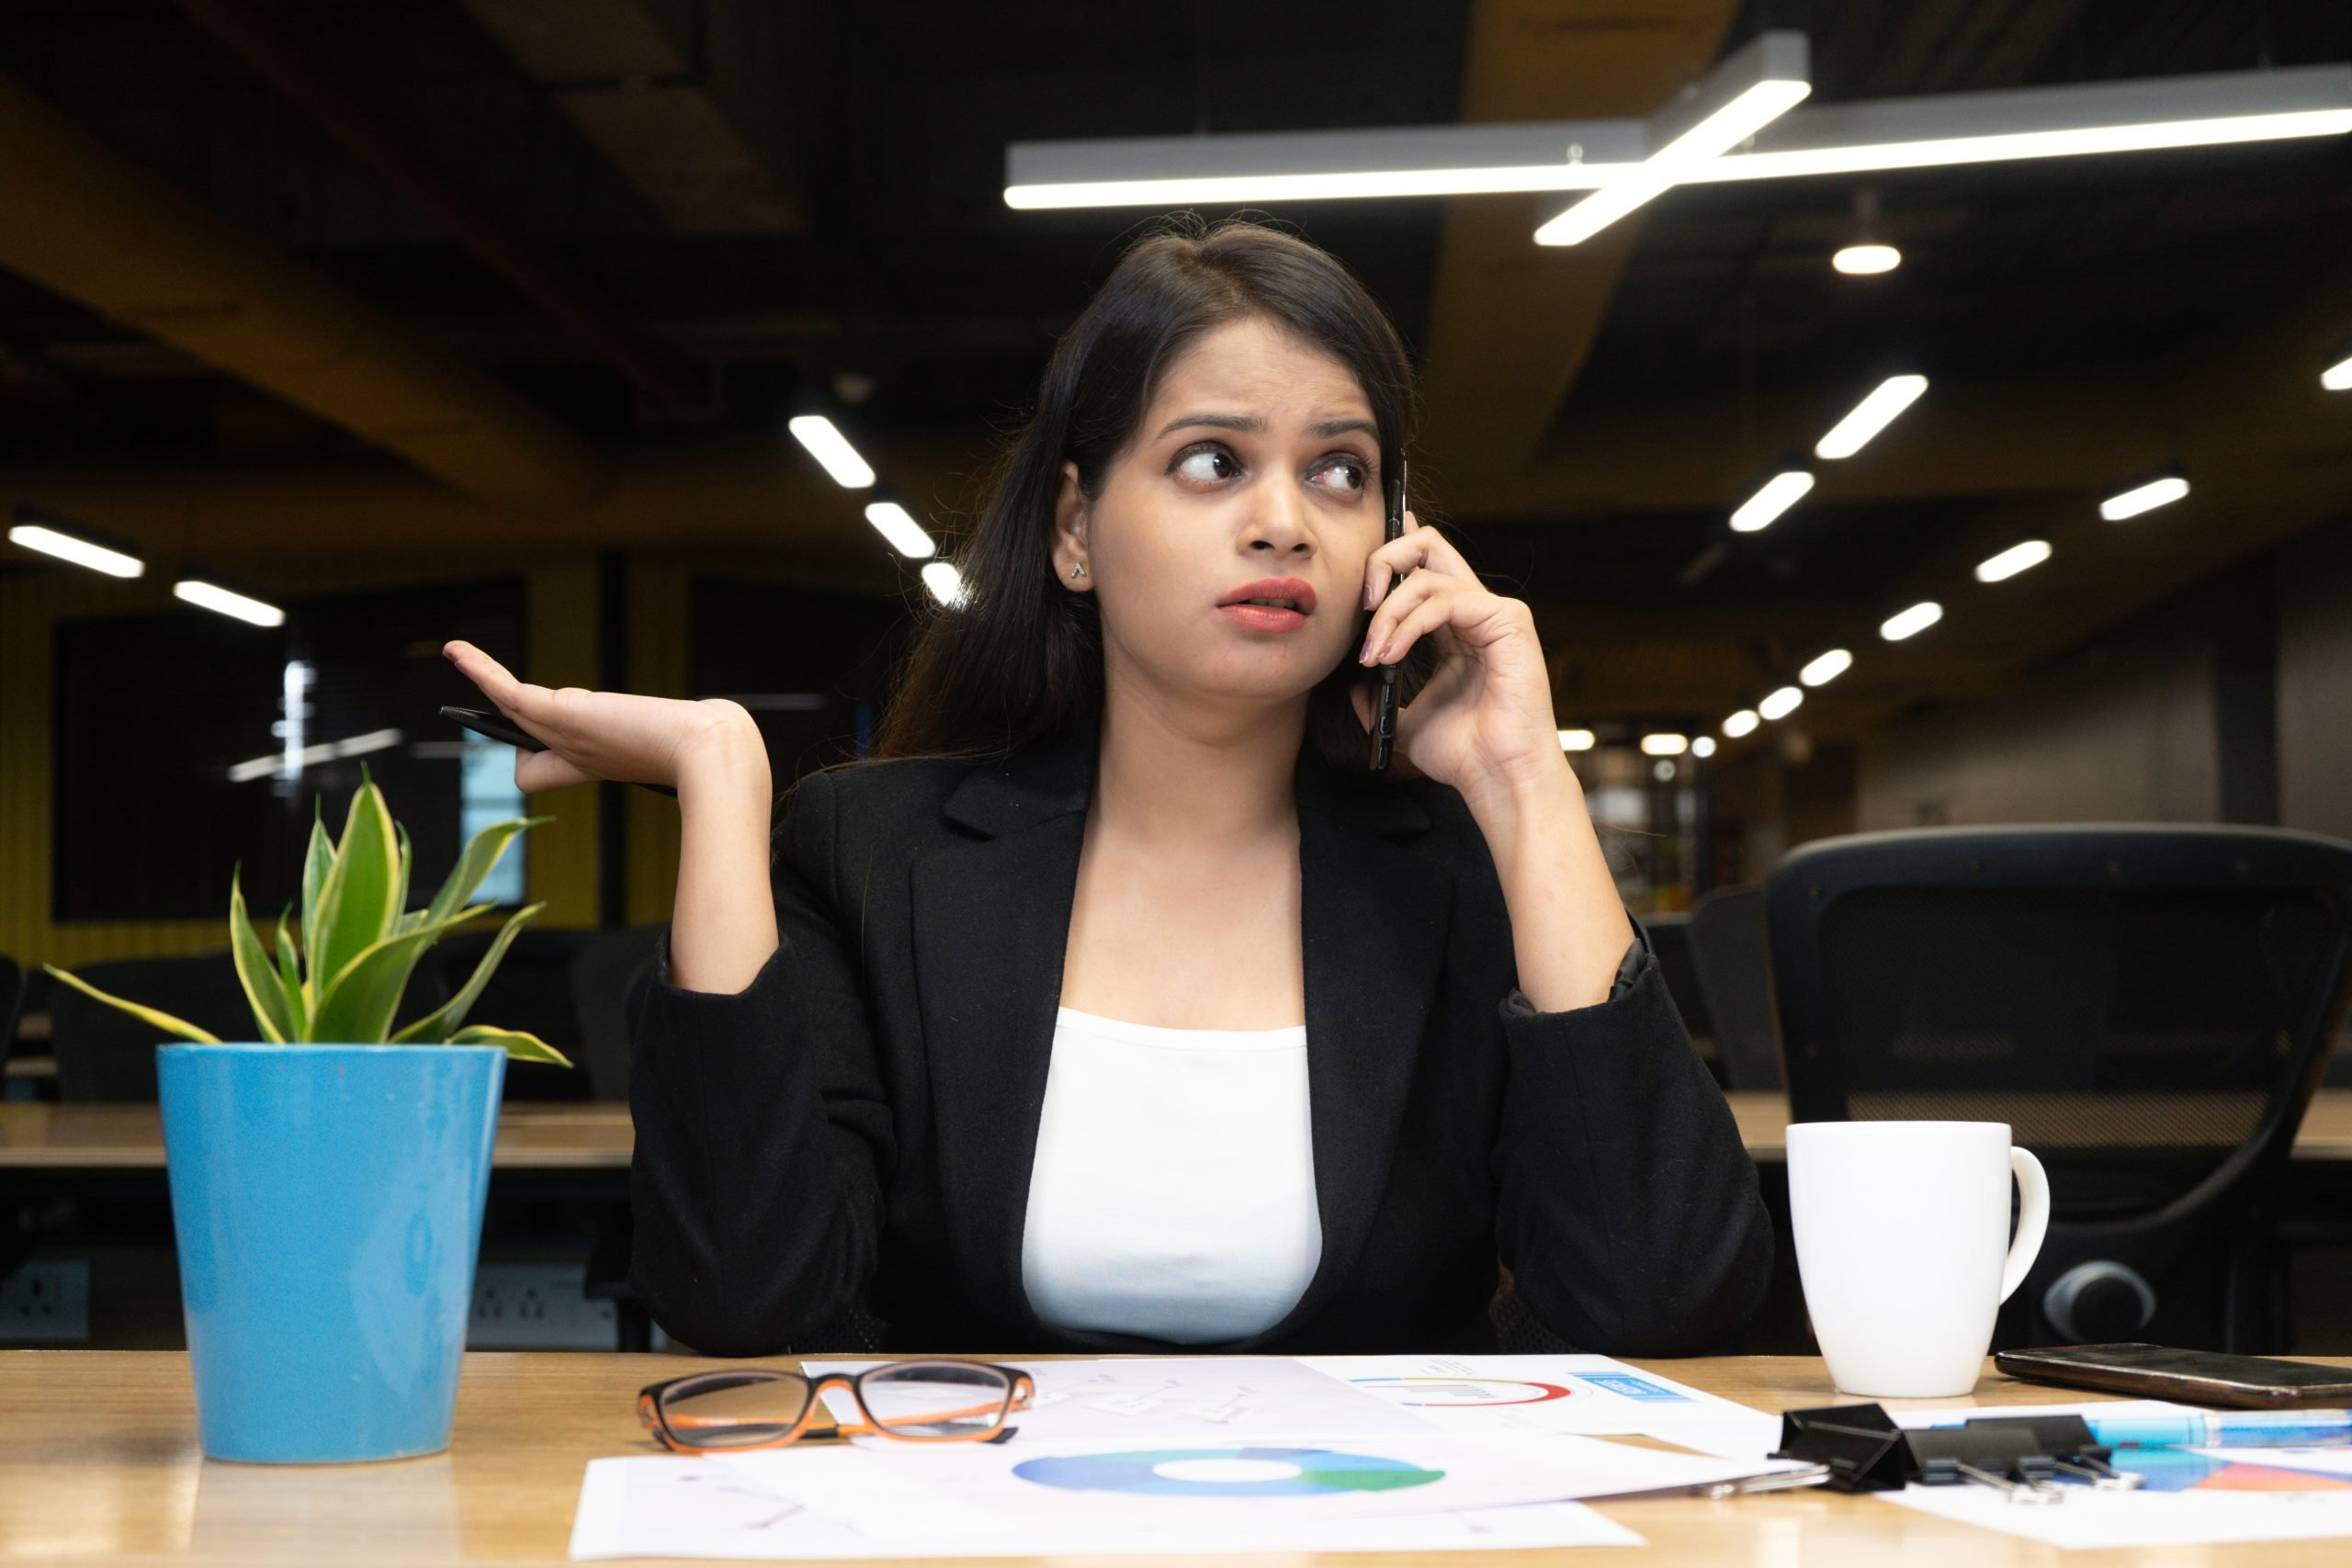 Employee busy on call